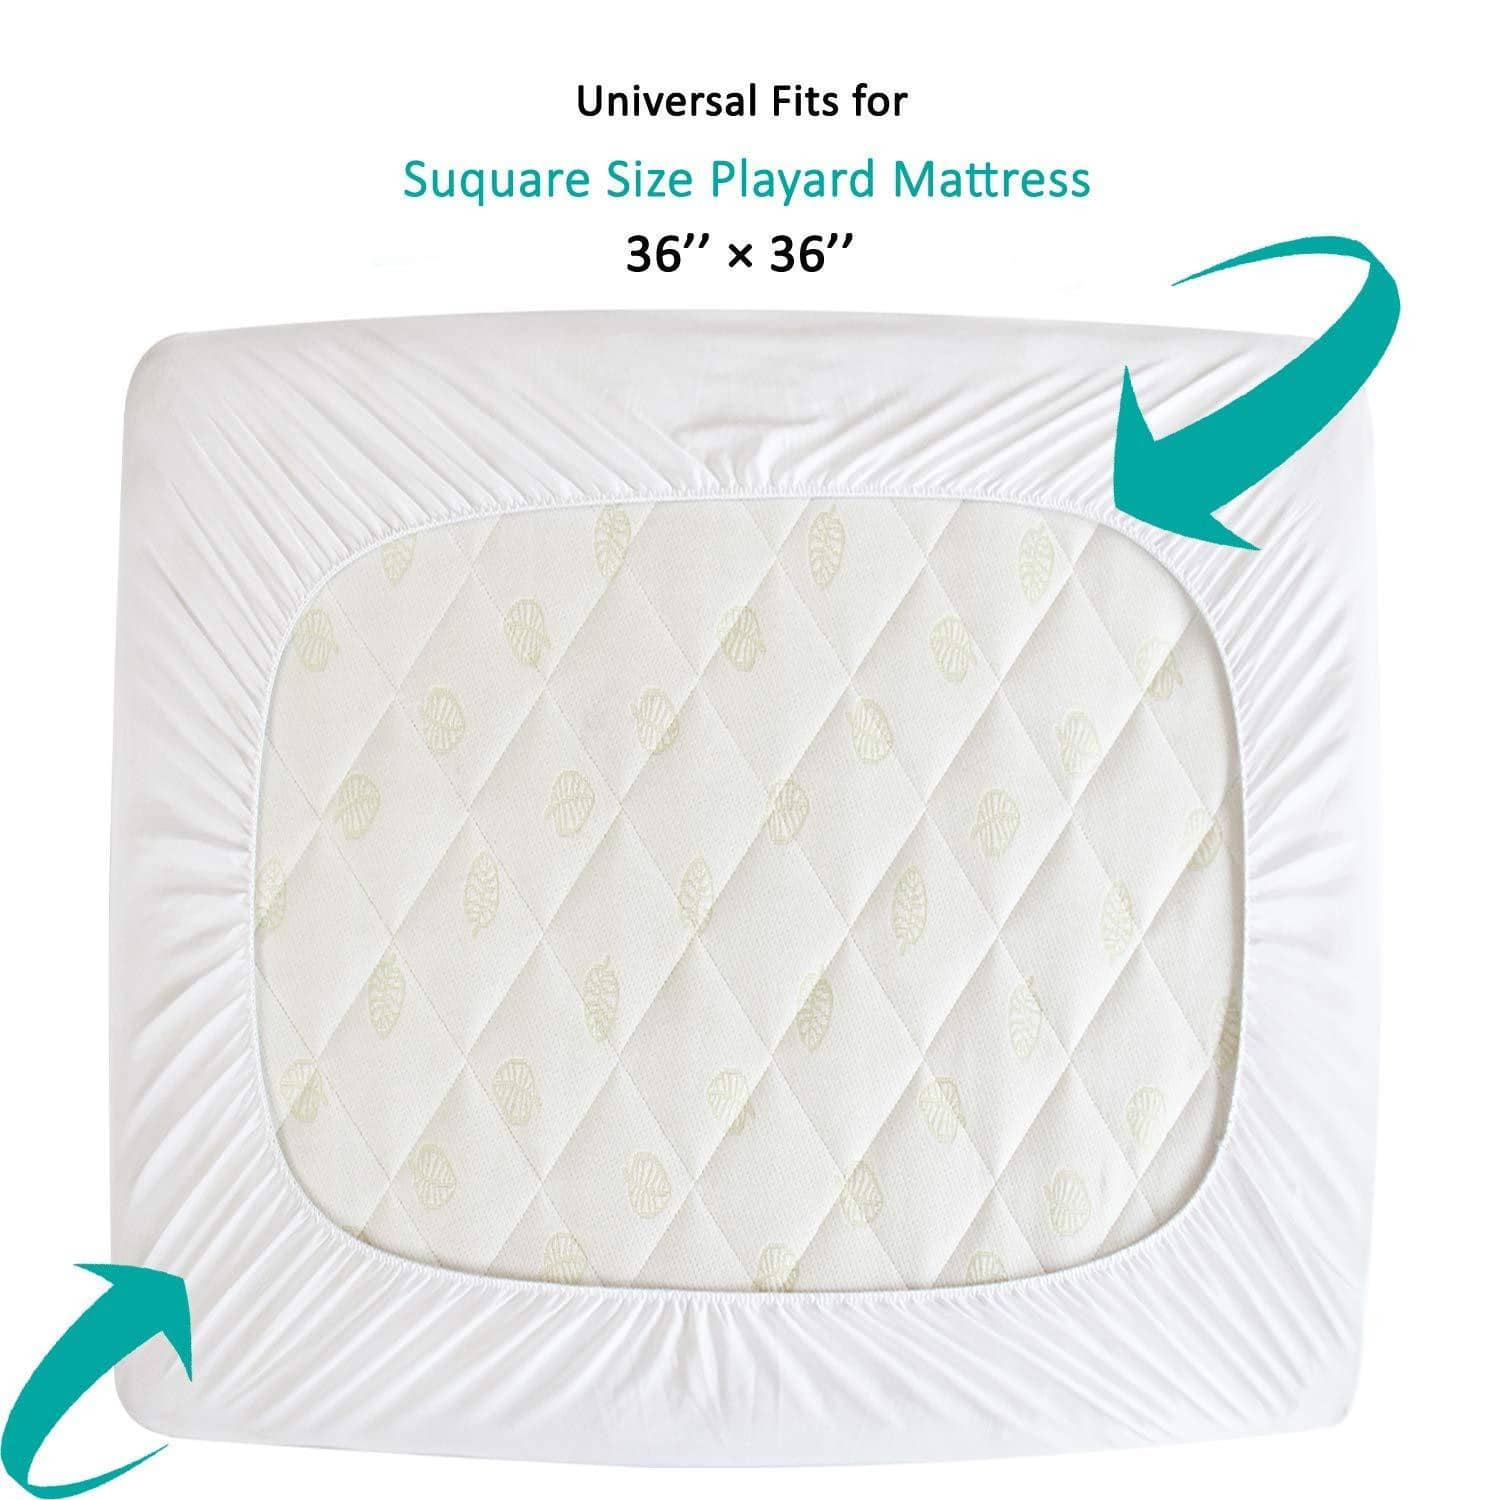 Biloban Pack N Play Mattress Pad For All Square Playard